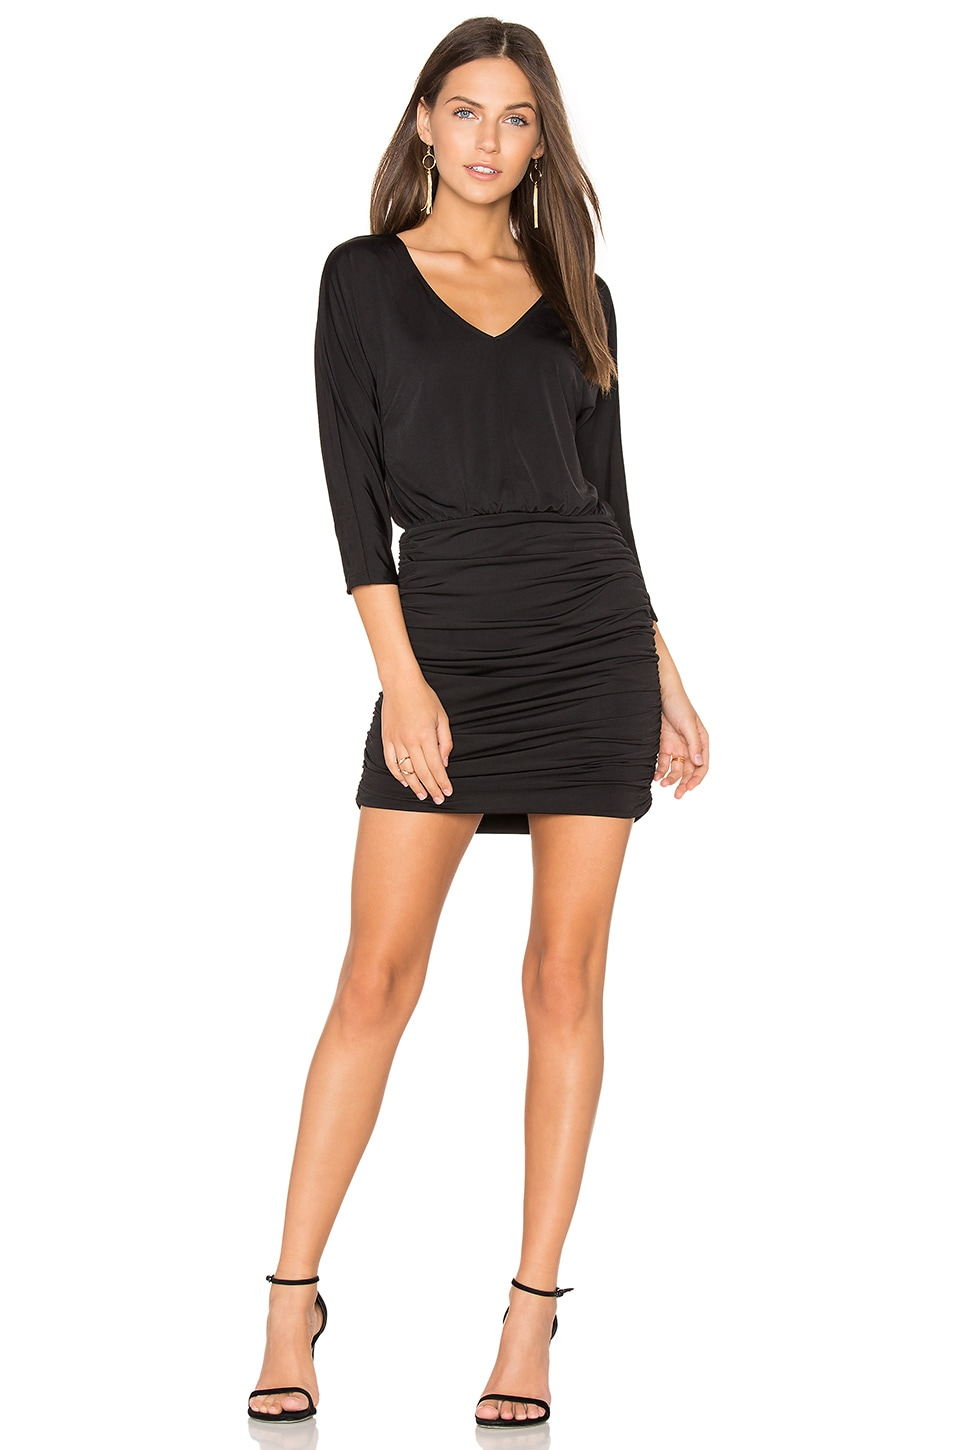 BLACK Luxe Jersey Ruched Mini Dress by Bobi